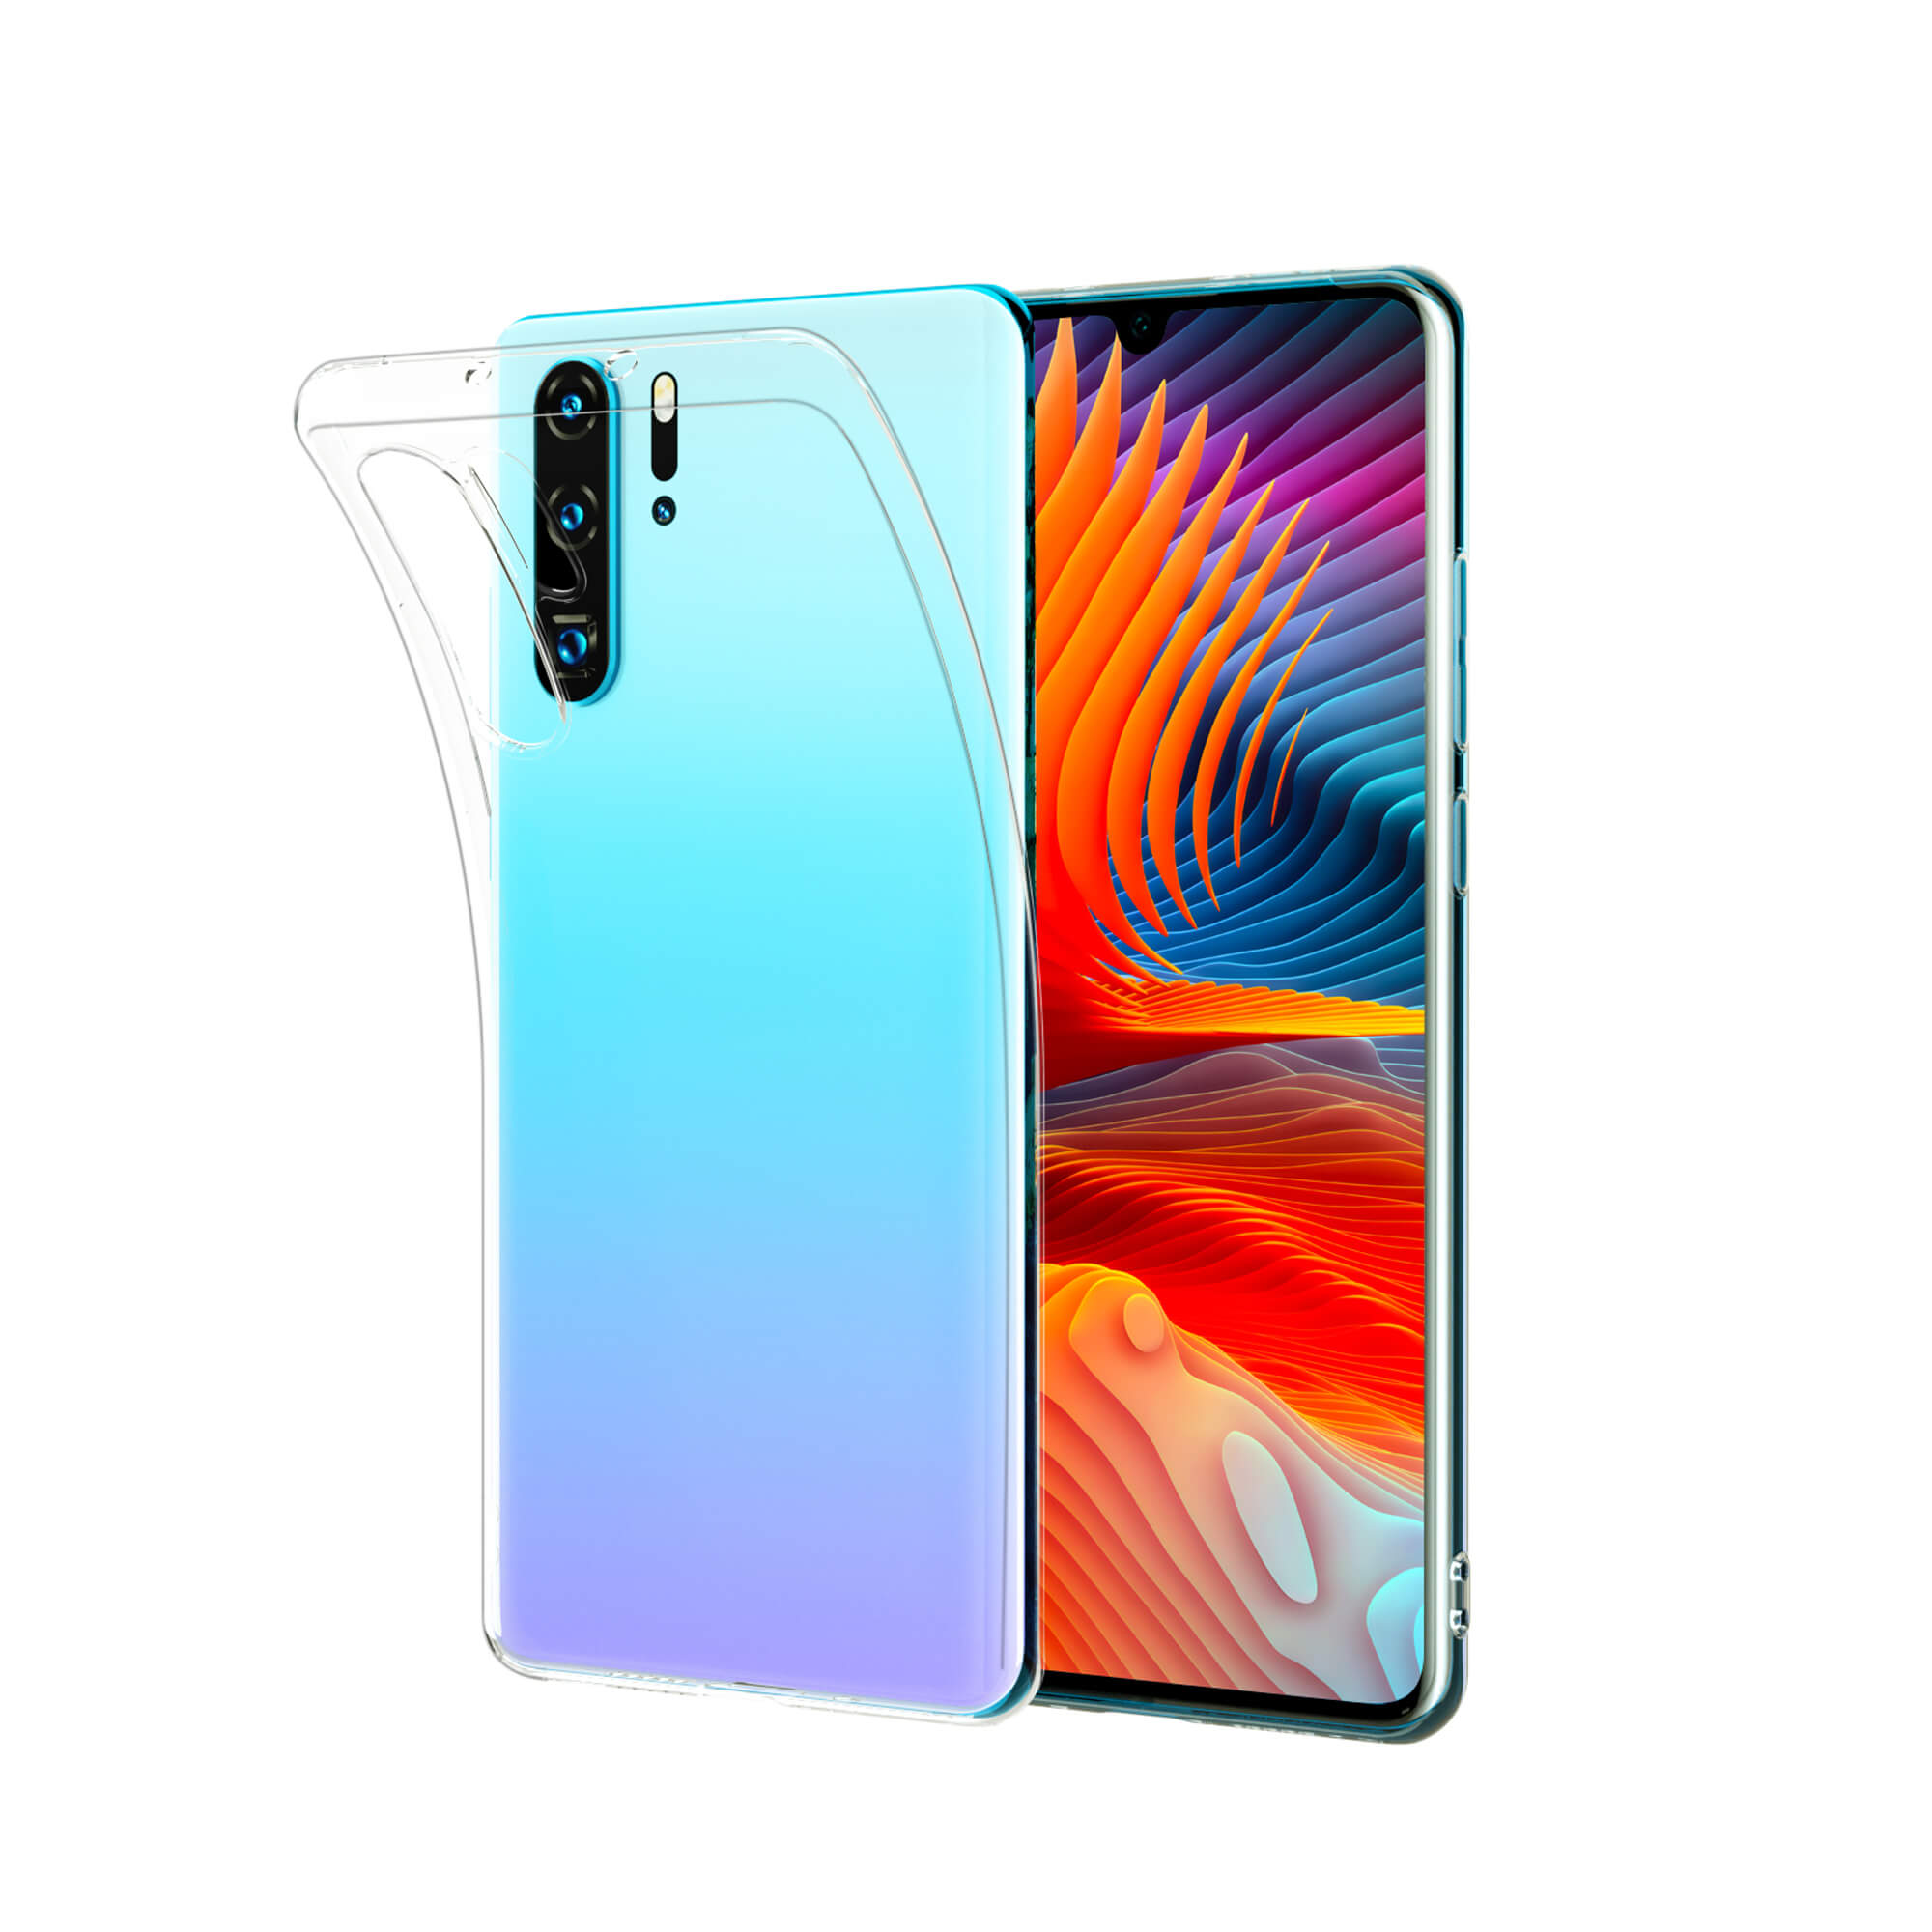 Clear-Gel-Case-For-Huawei-P30-Pro-P20-Mate-20-Lite-Tempered-Glass-Screen-Cover thumbnail 106